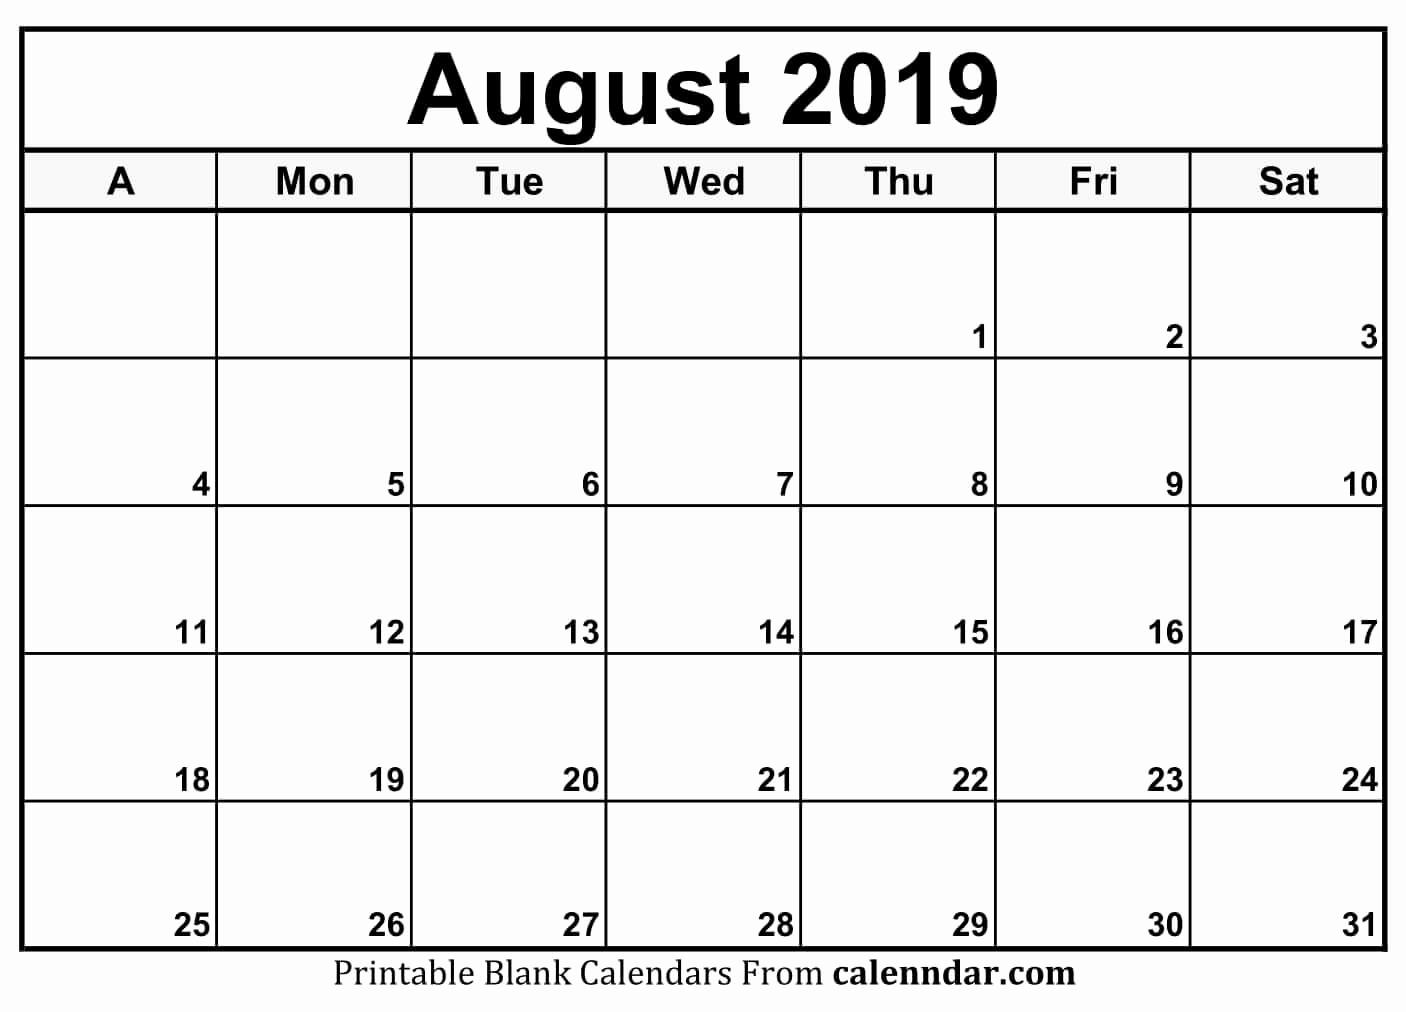 Get Calendar August 2019 Print Out ⋆ The Best Printable